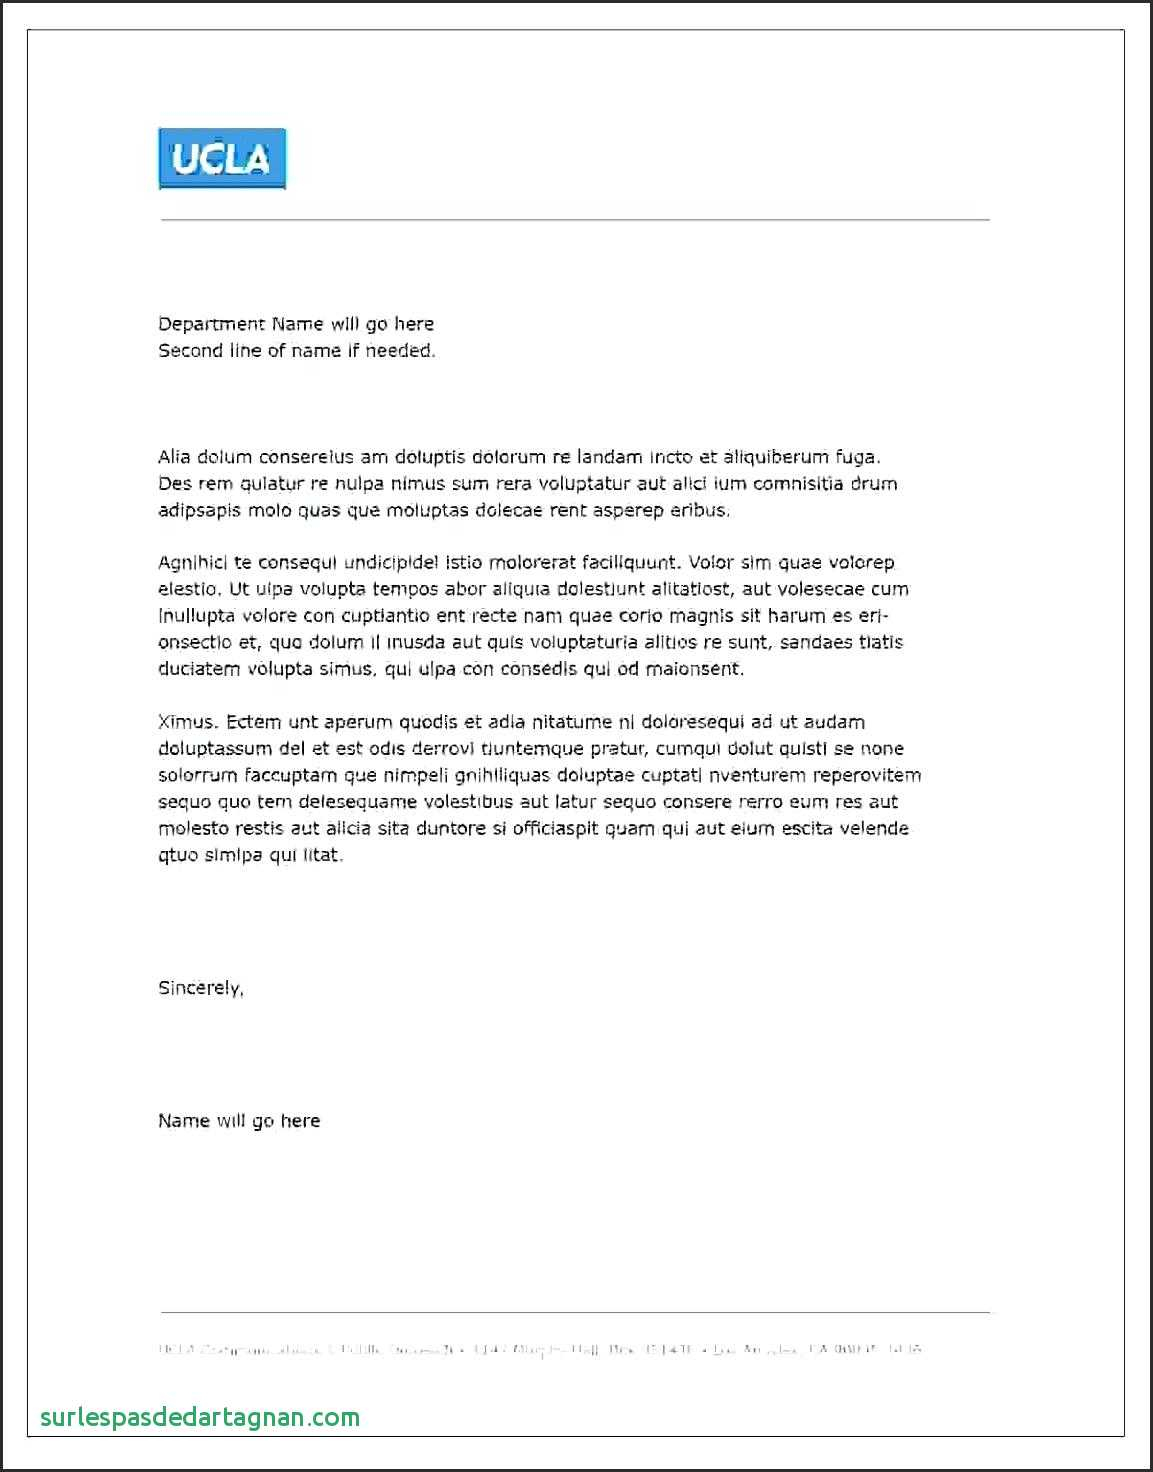 Christmas Letter Template Word Free - Template Recipe Template for Microsoft Word Business Letter Free